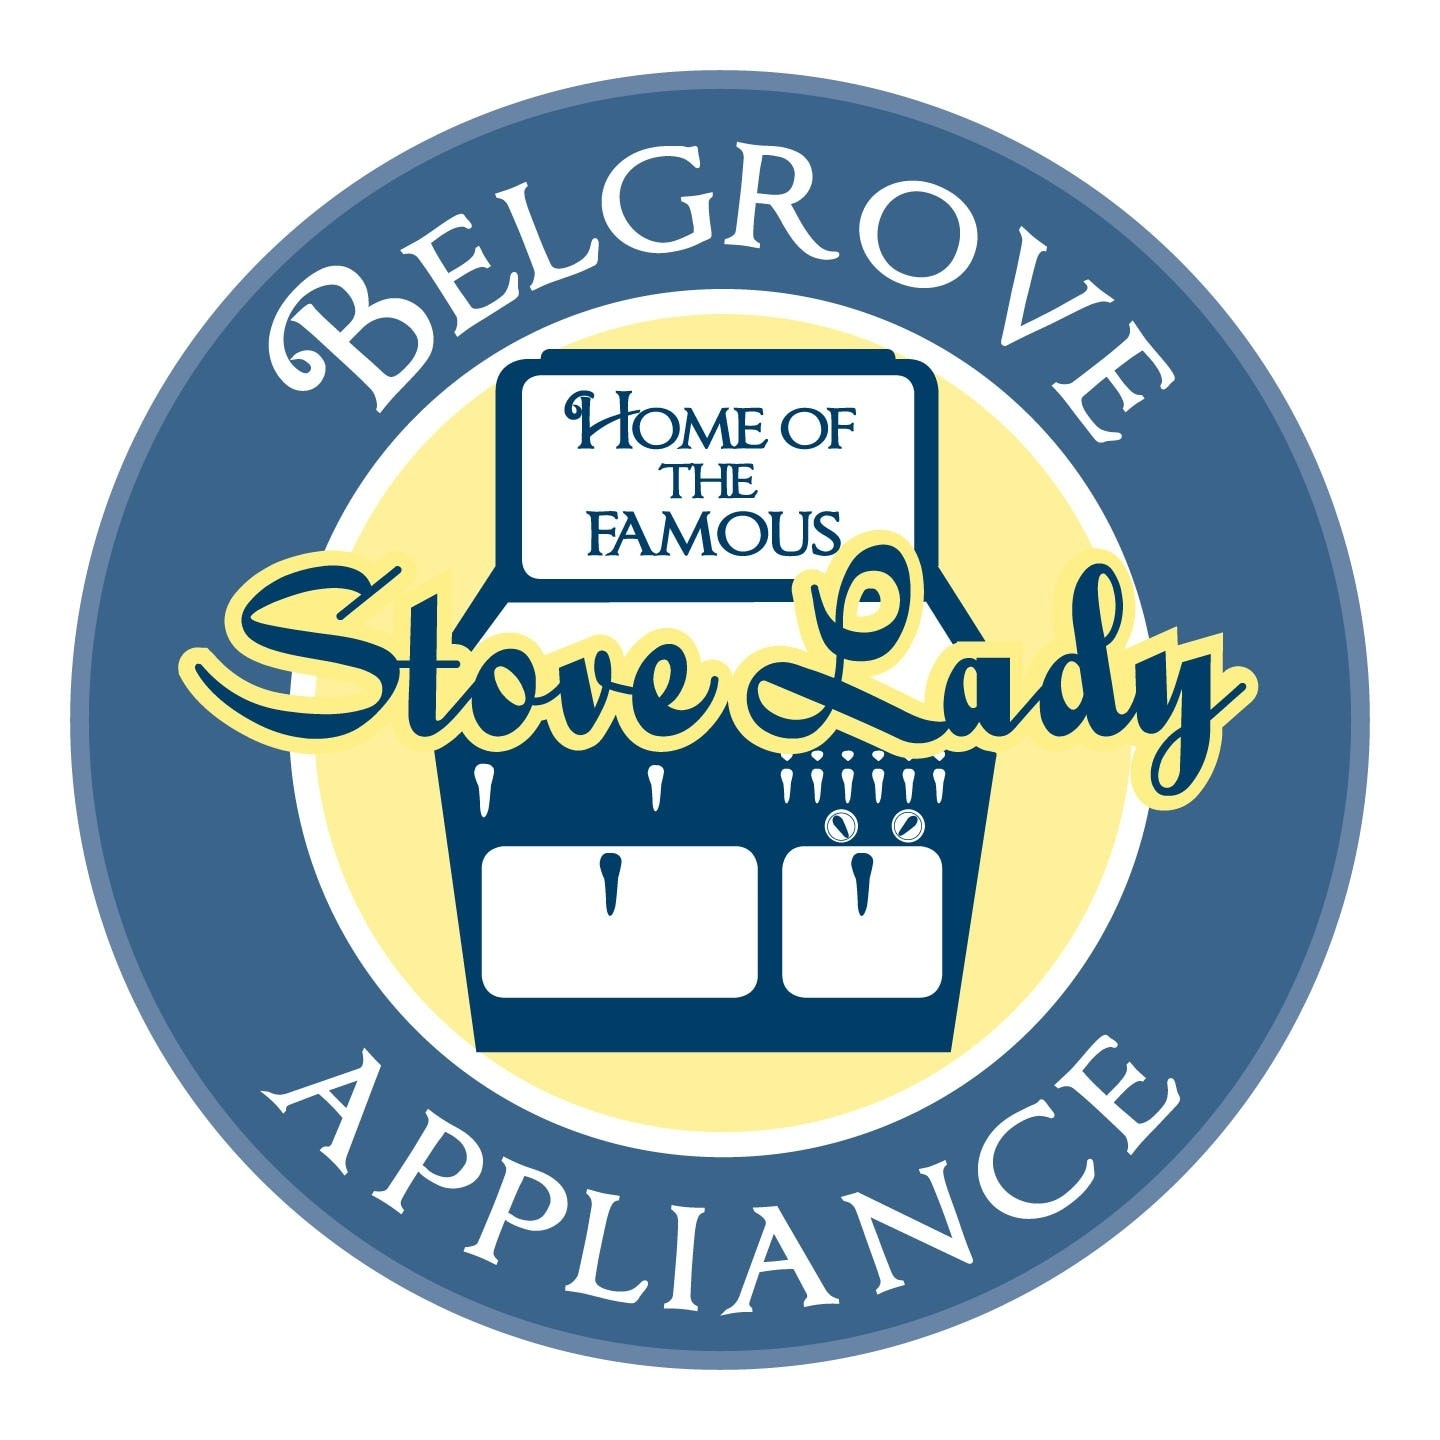 Belgrove Appliance Inc